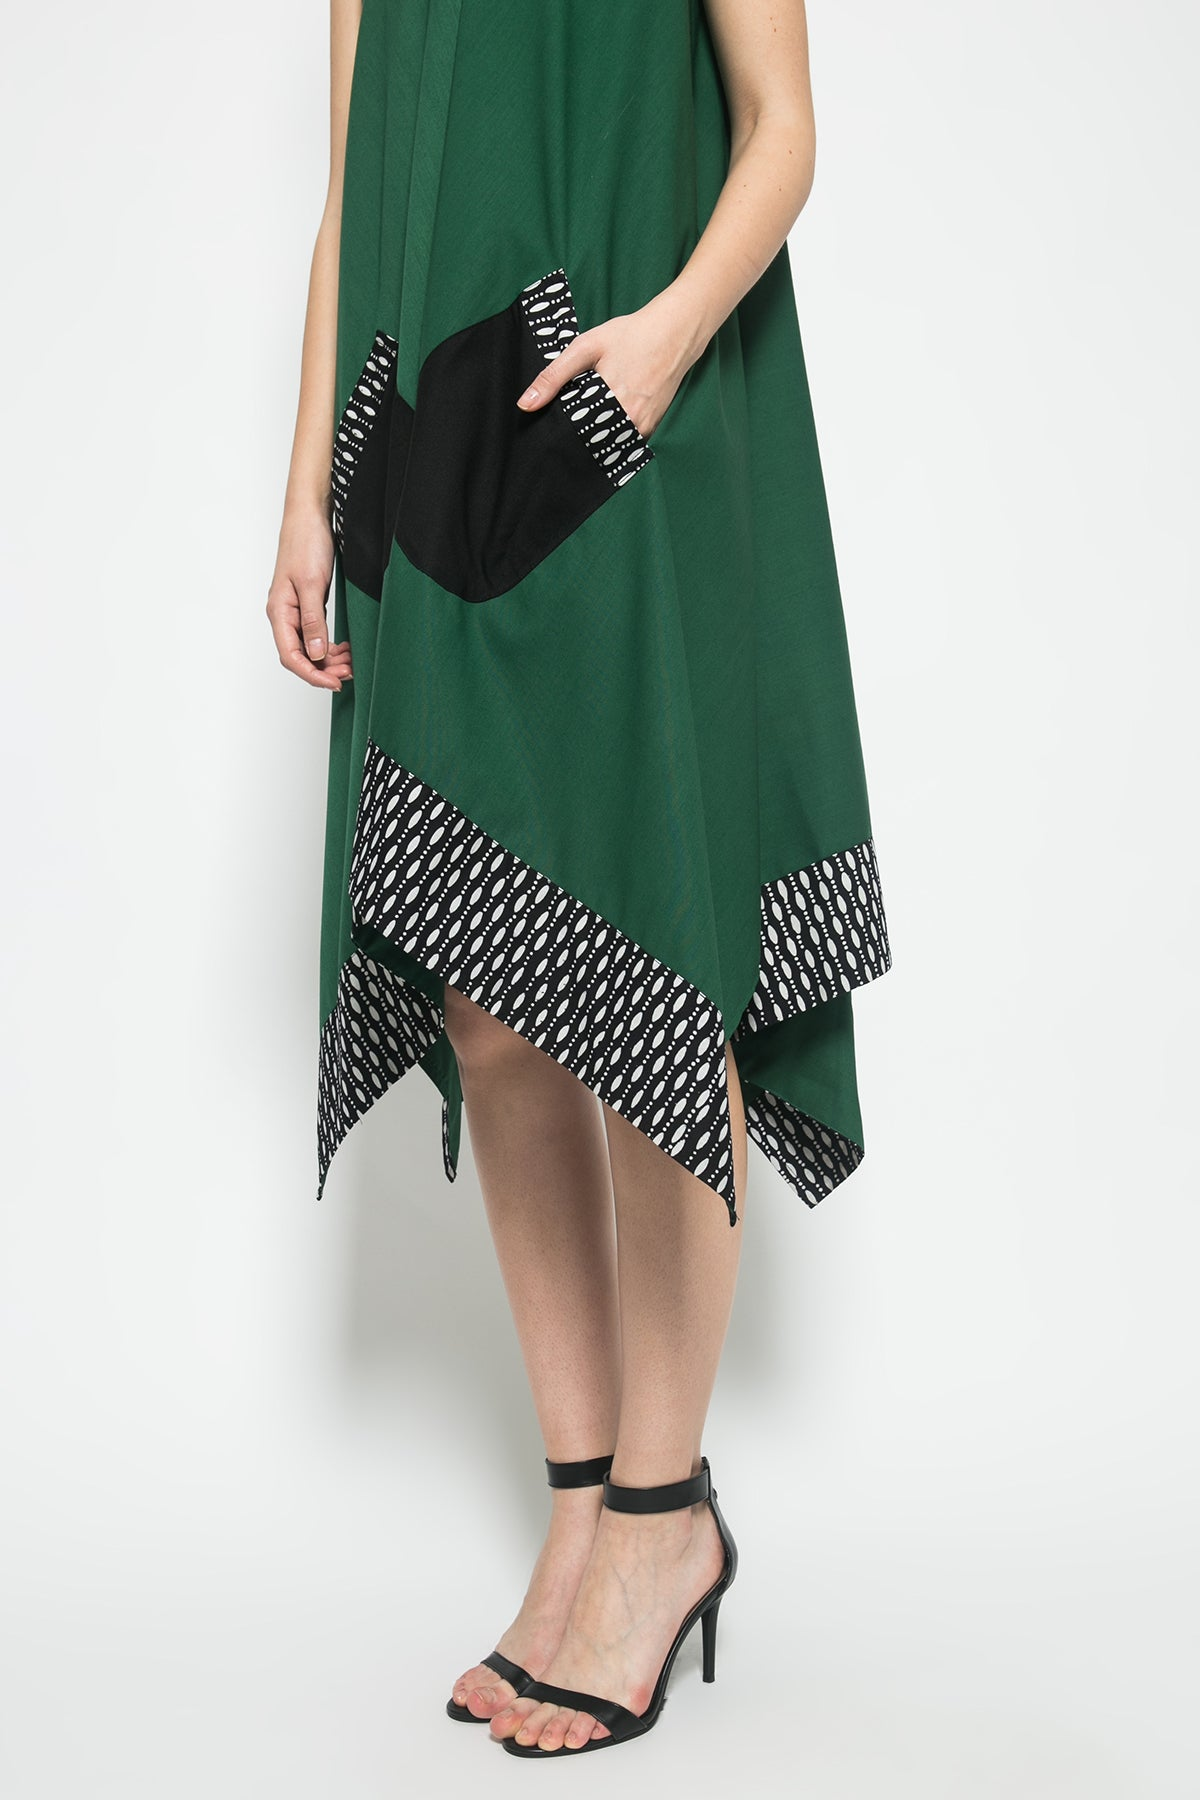 Awra Dress in Green